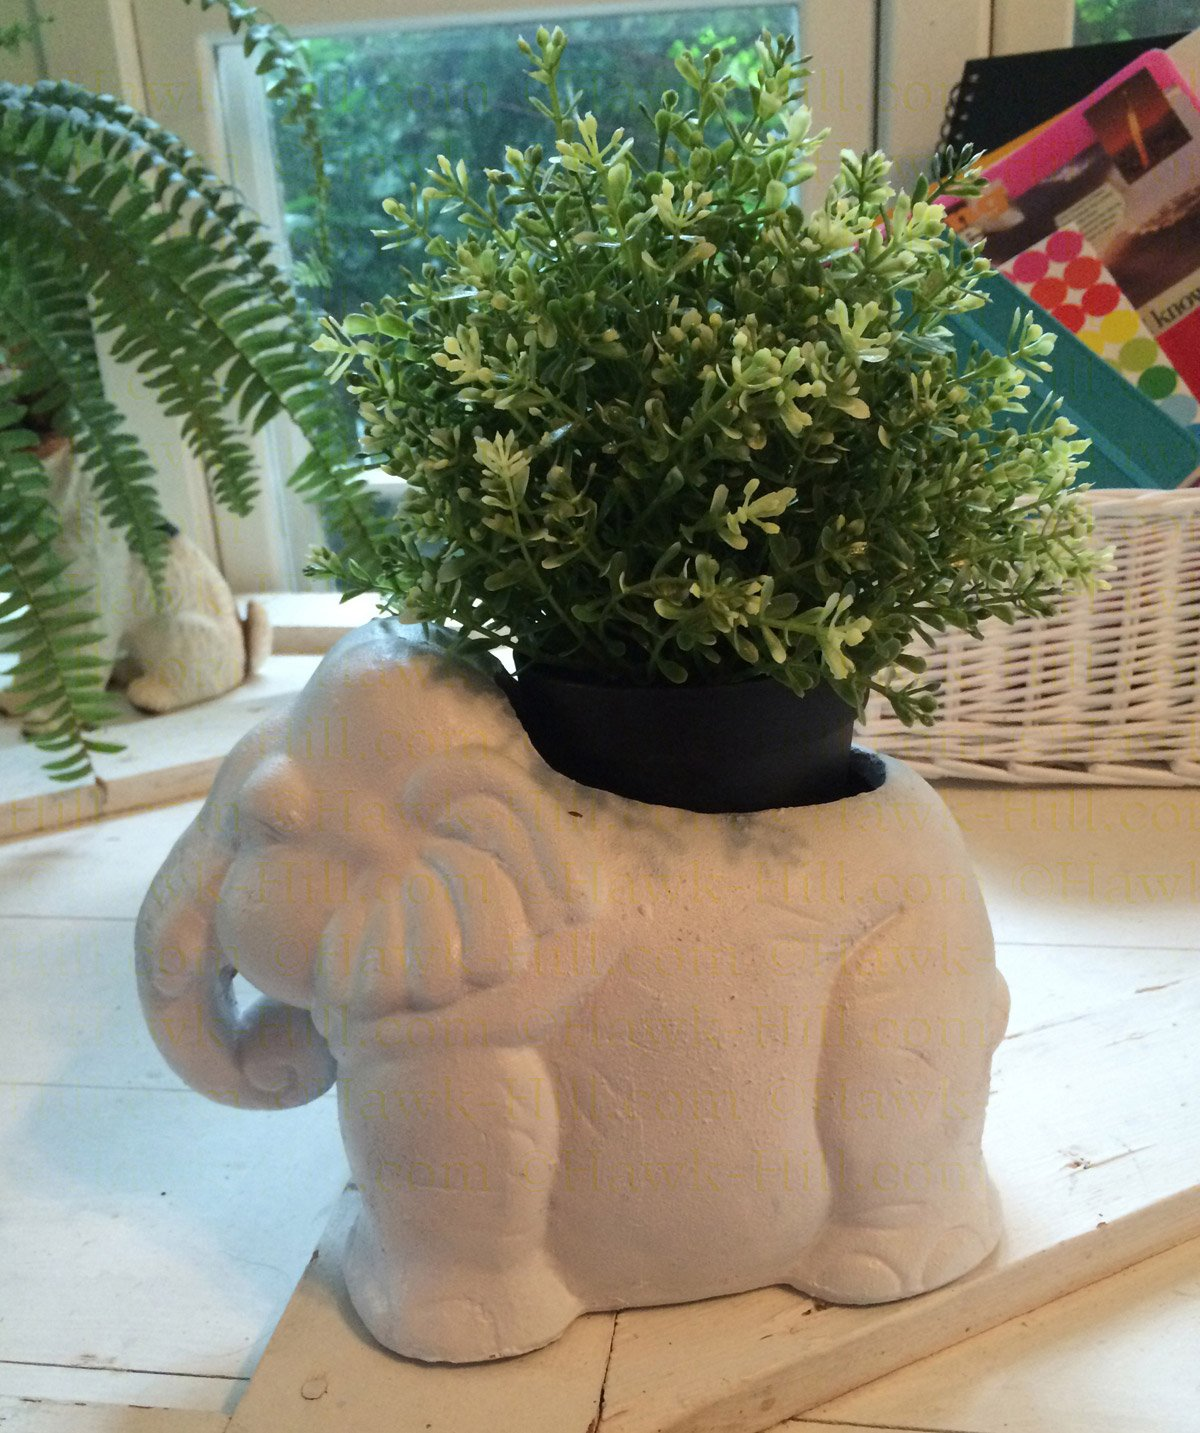 hacking Ikea's potted herb plants